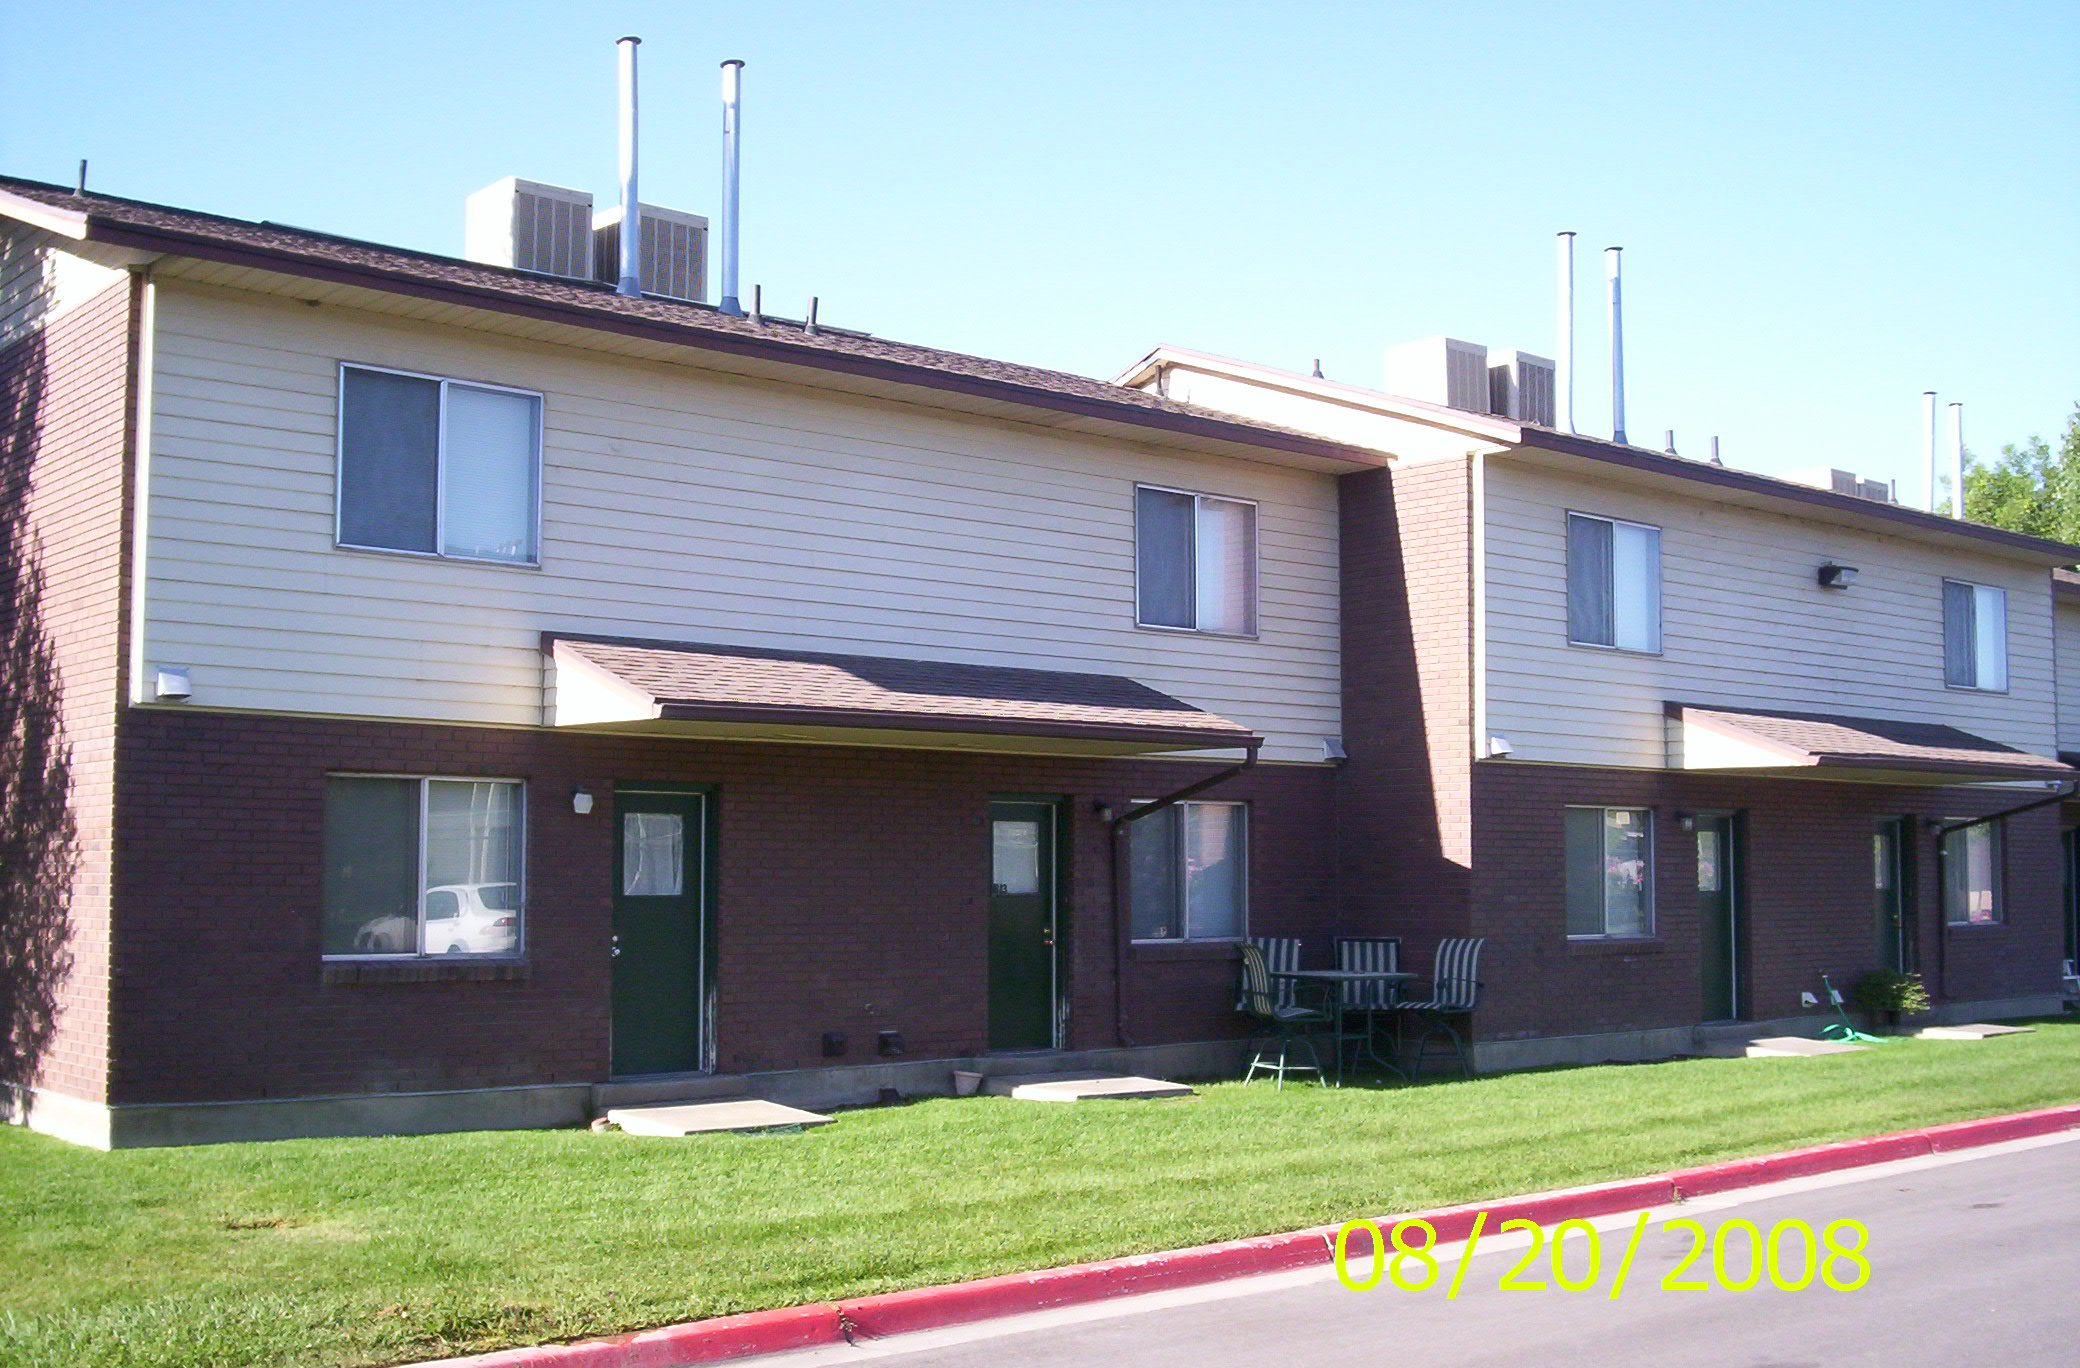 affordable housing in provo ut